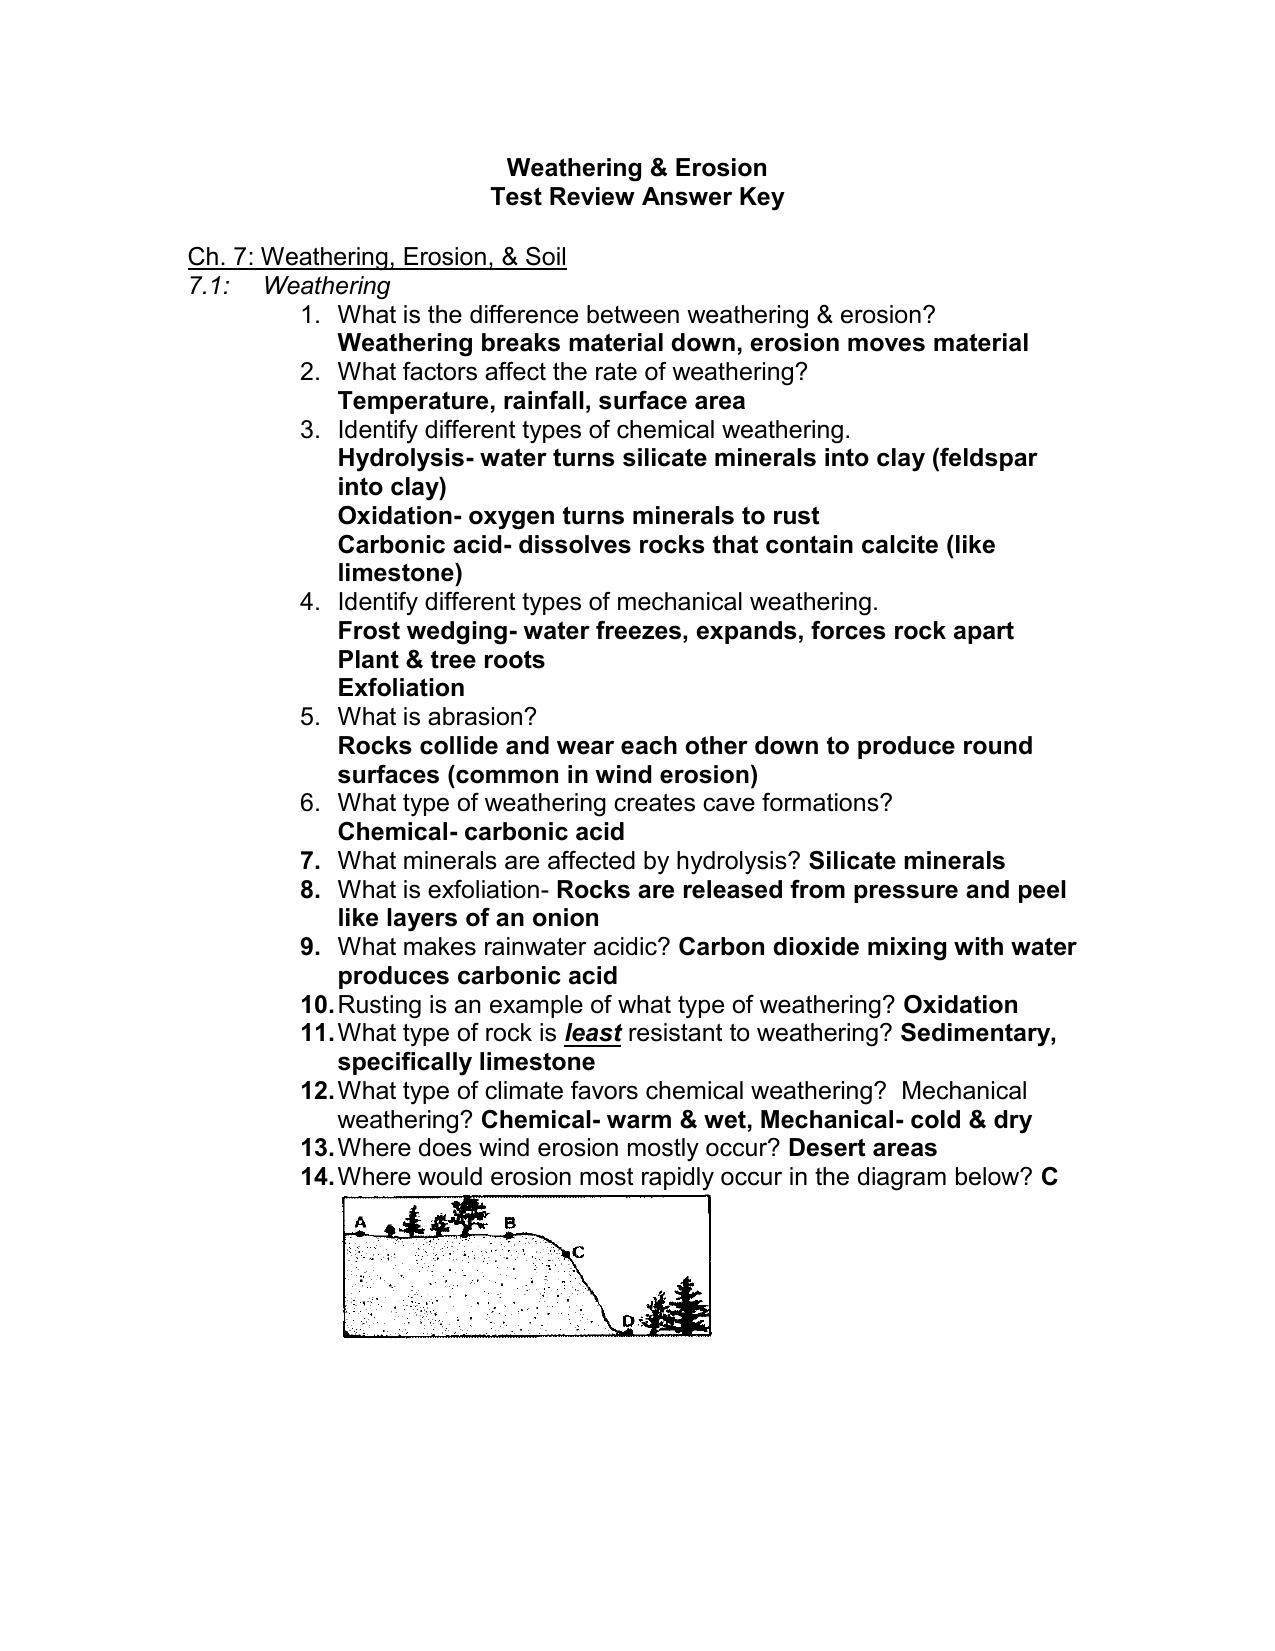 worksheet Water Erosion Worksheet Answers weathering erosion